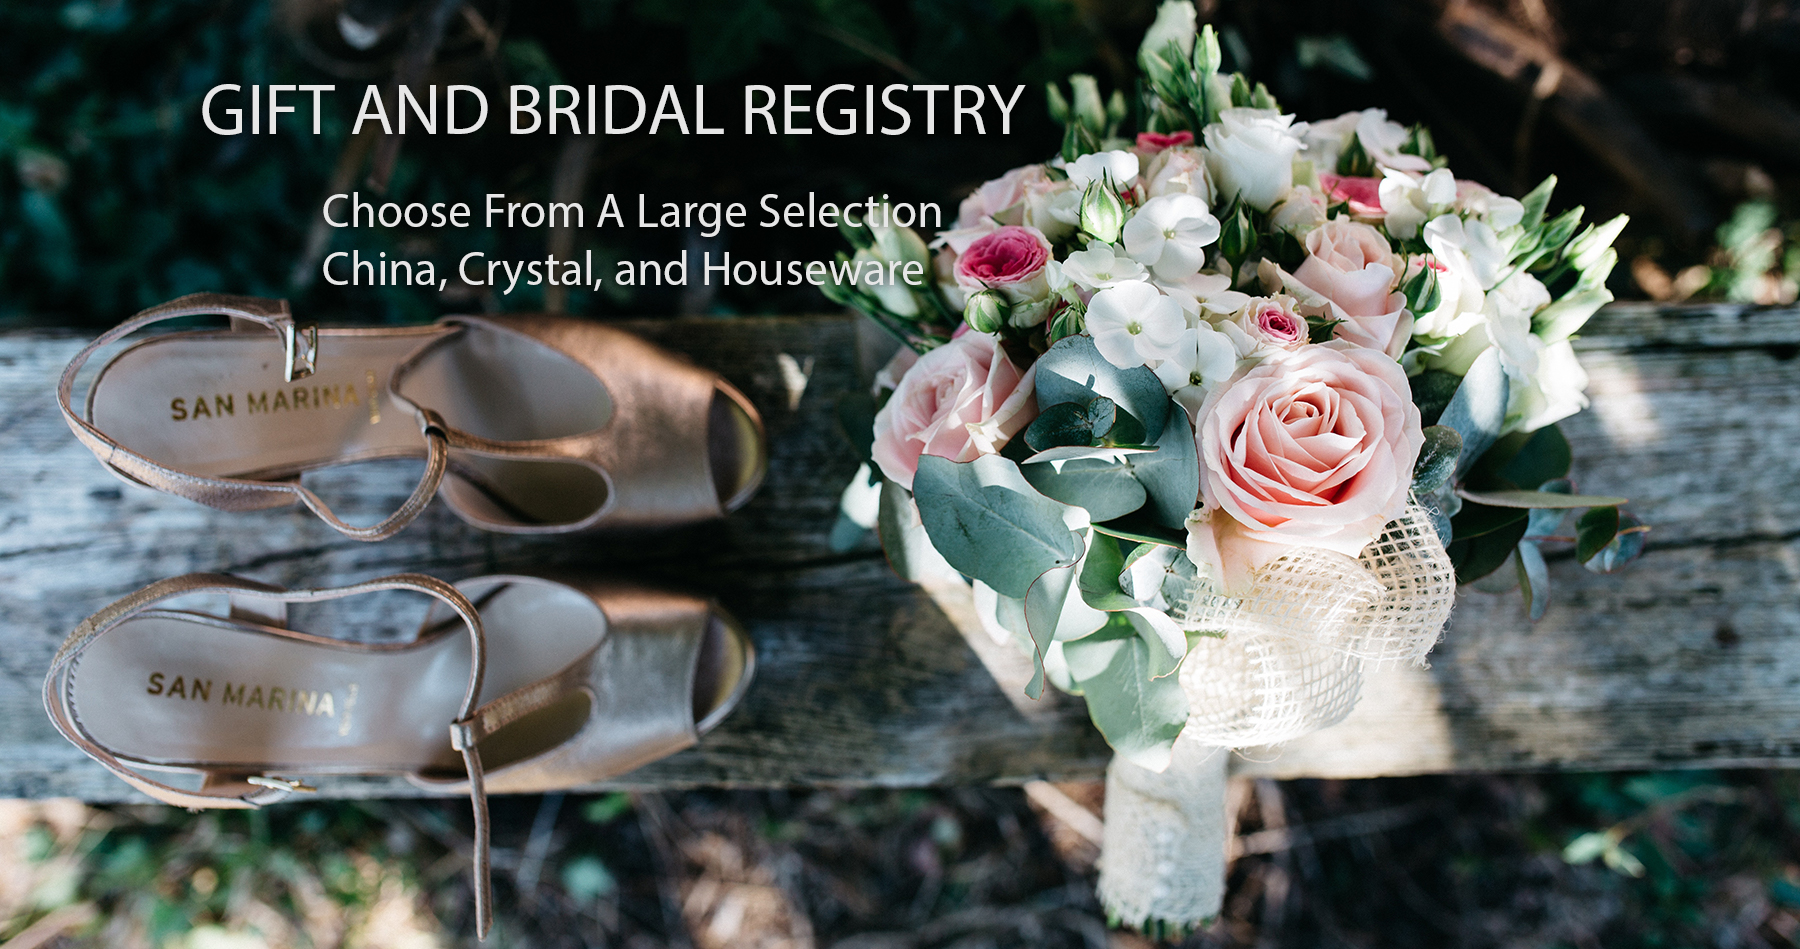 Explore Gift and Bridal Collection